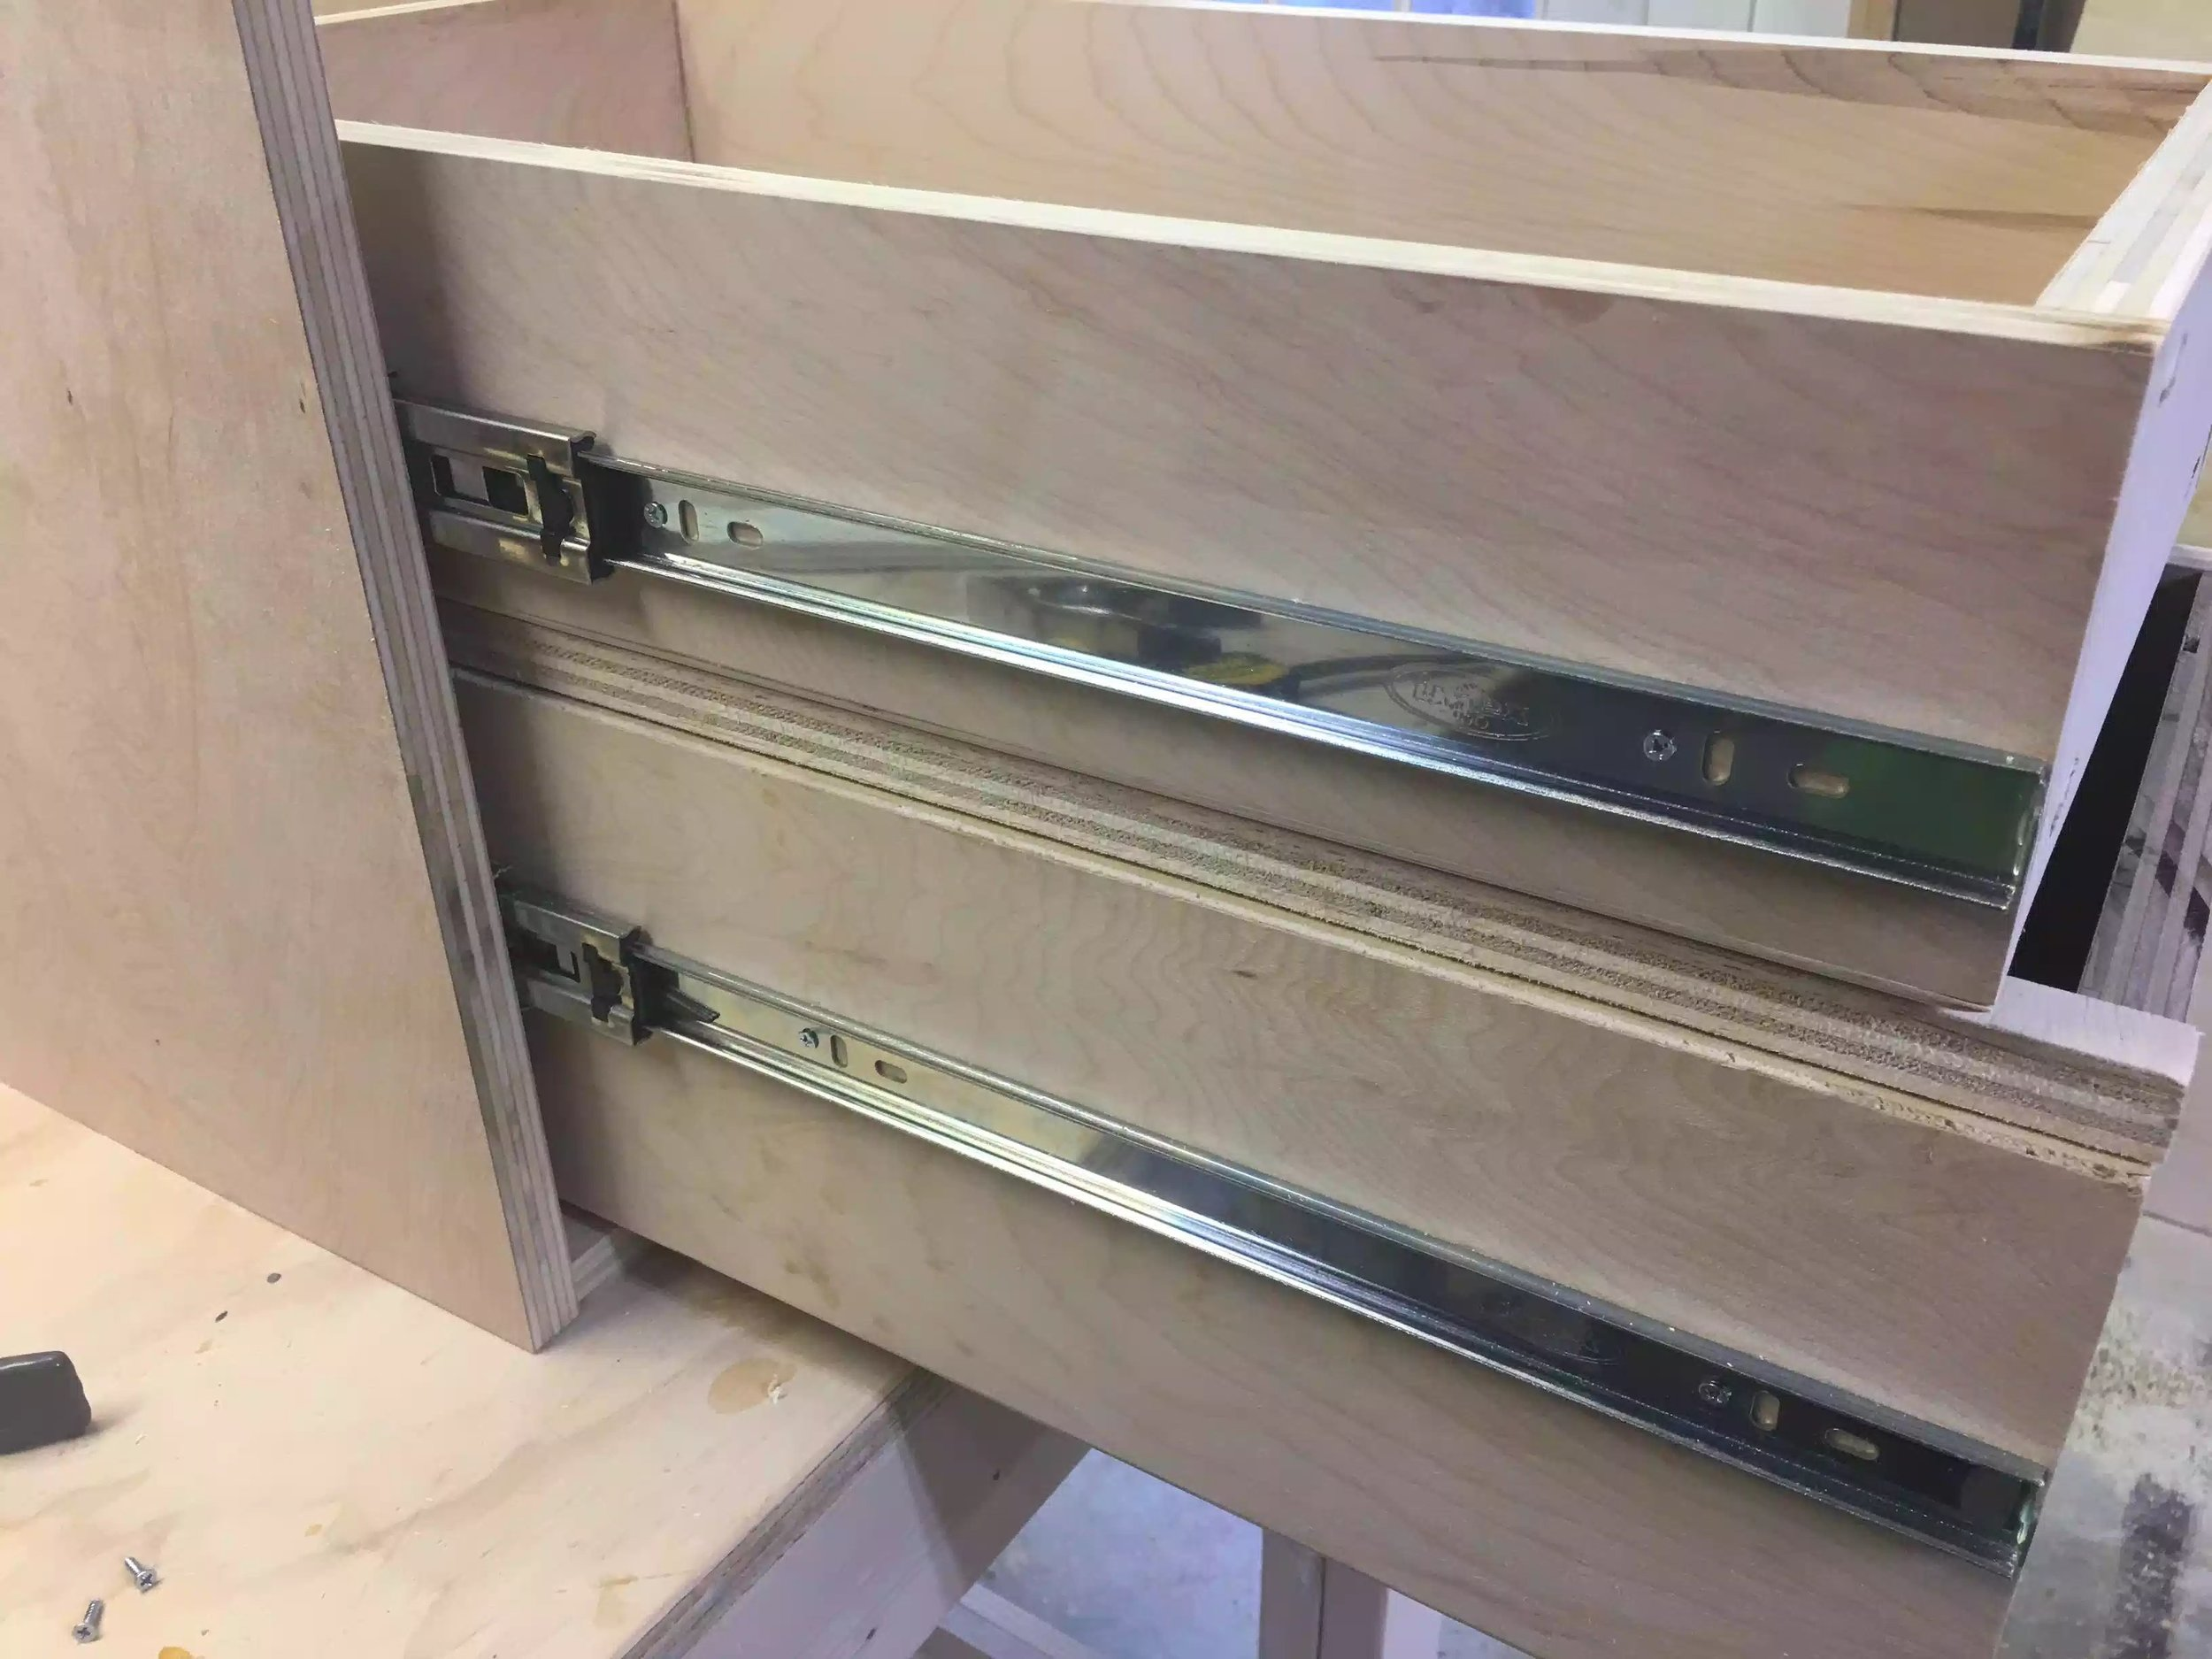 Here you can see the spacer sandwiched between the two drawers.